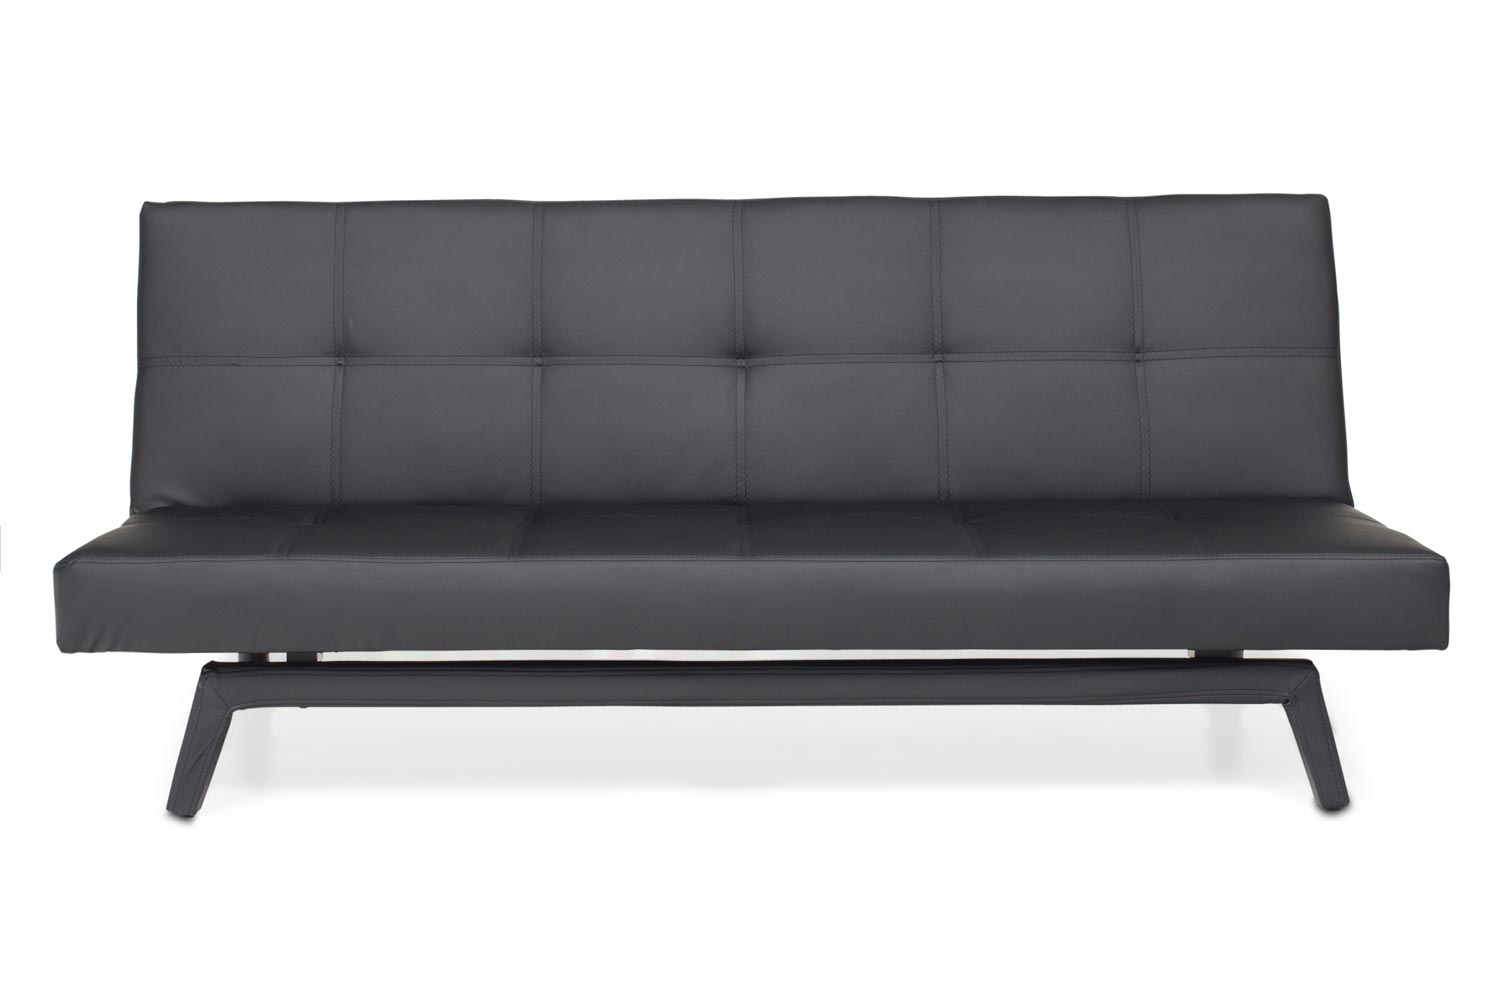 click clack sofa bed argos best leather sofas canada corner beds ireland baci living room